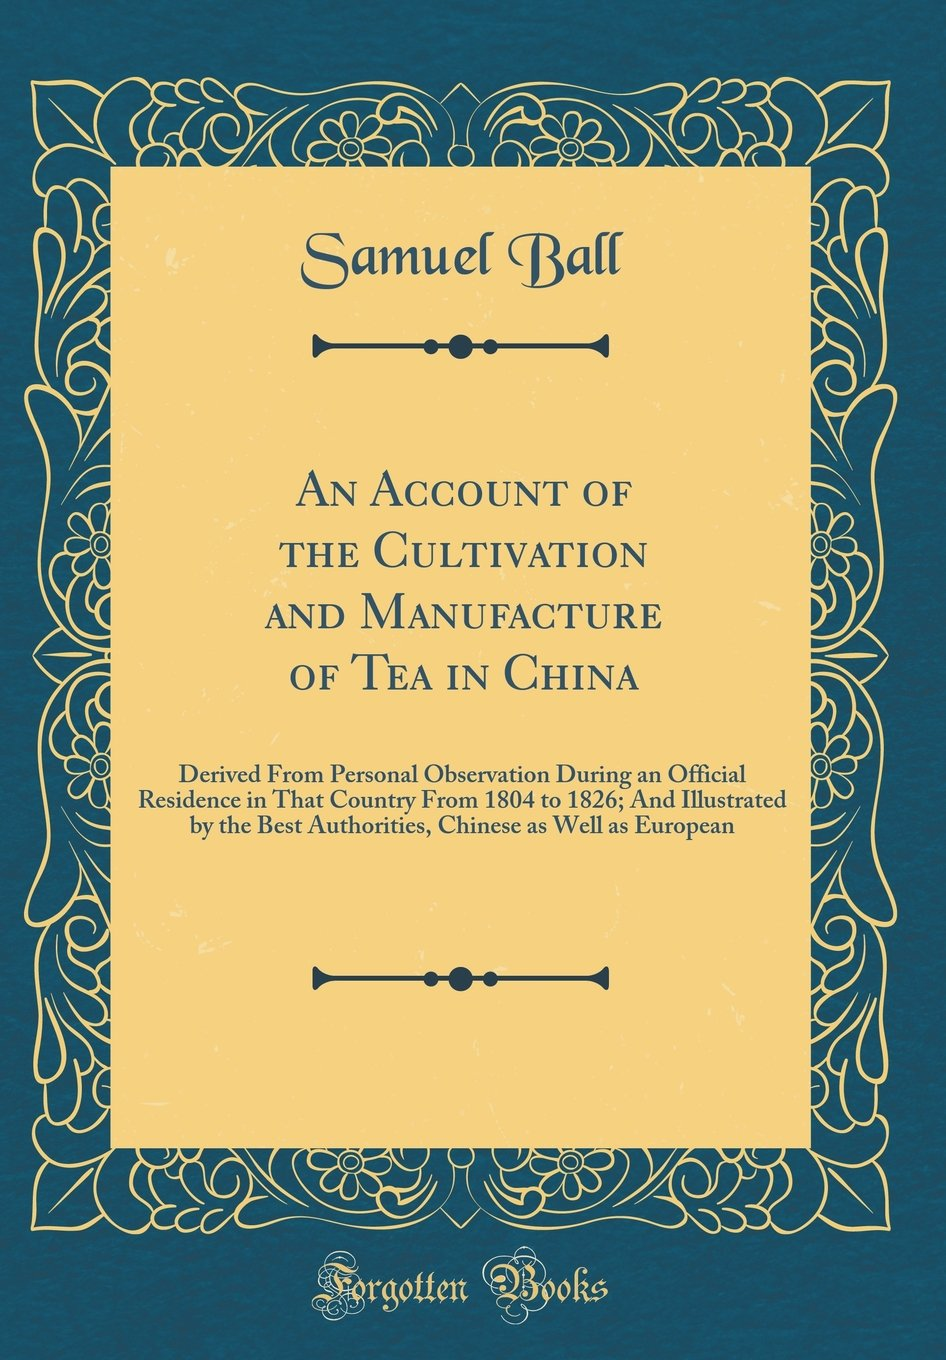 Read Online An Account of the Cultivation and Manufacture of Tea in China: Derived From Personal Observation During an Official Residence in That Country From ... Chinese as Well as European (Classic Reprint) pdf